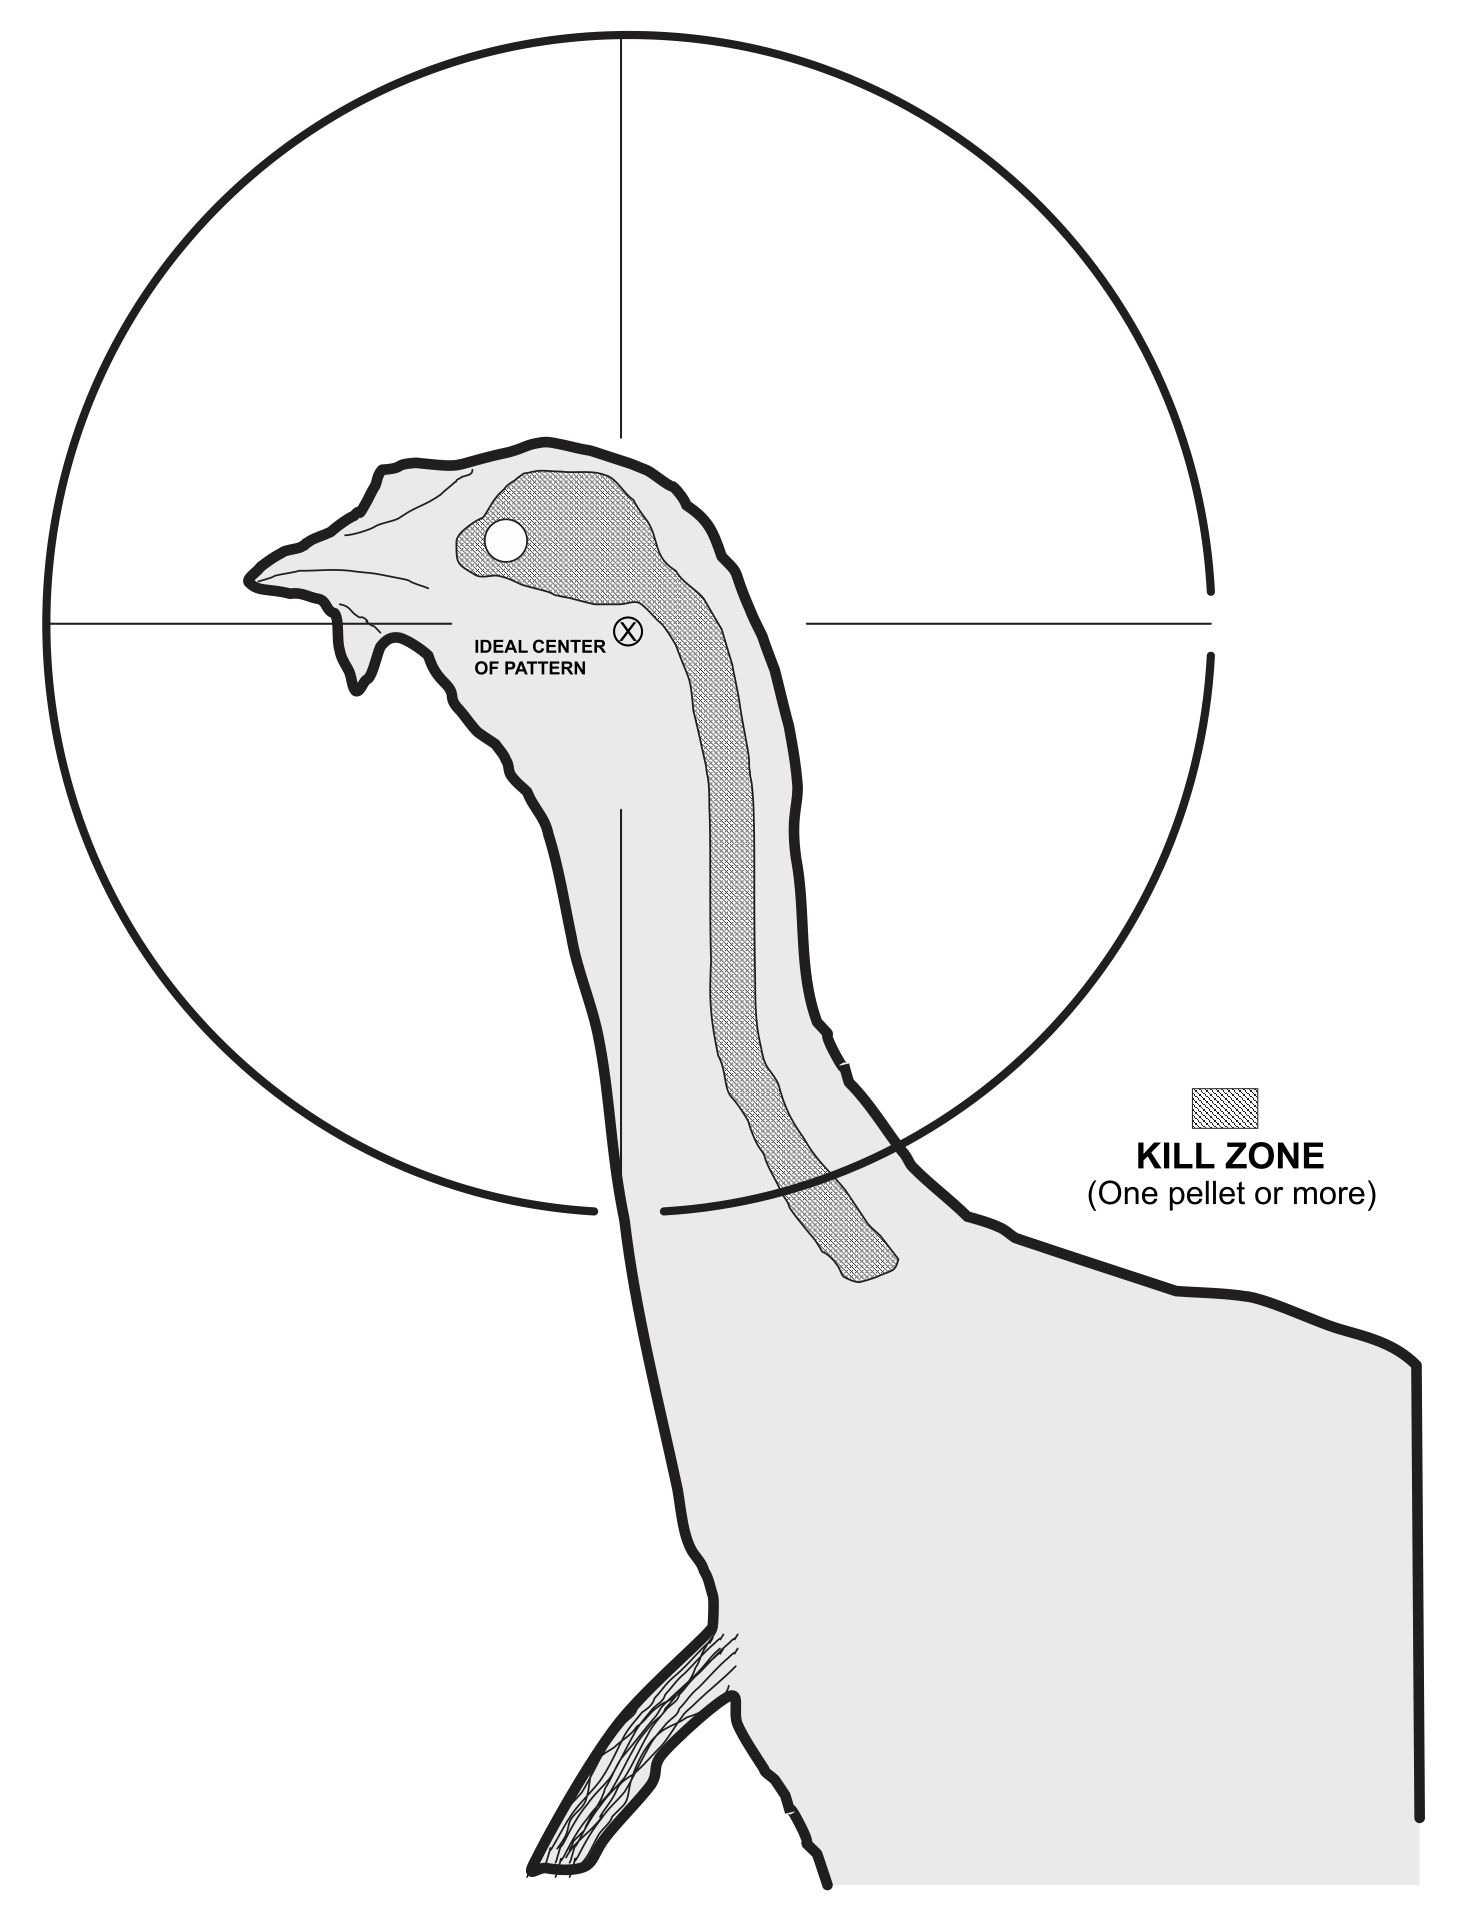 Printable Turkey Targets for Shooting